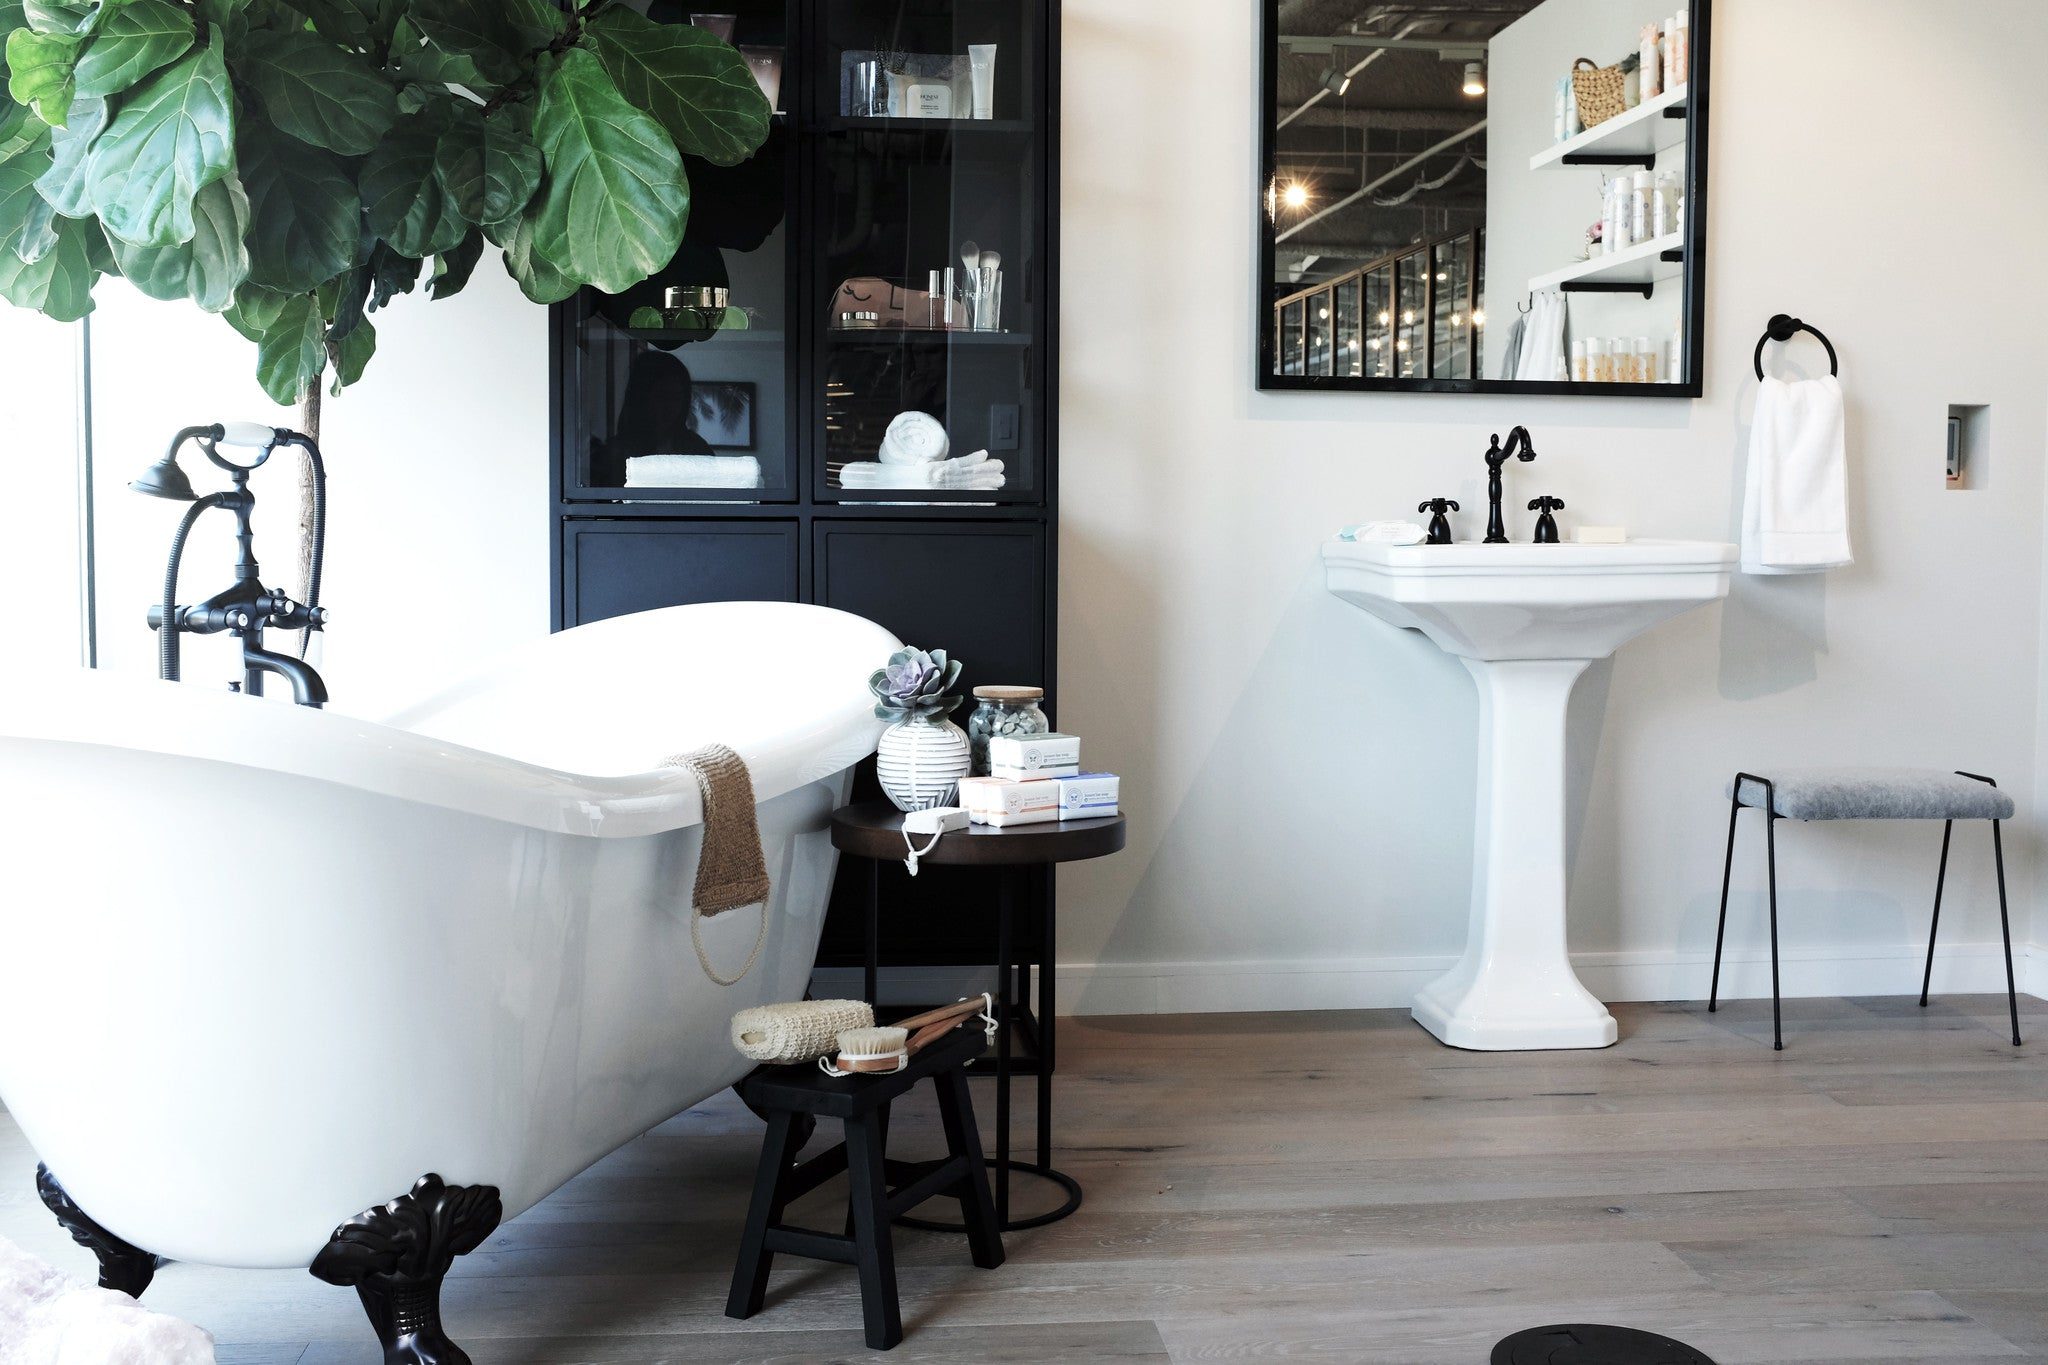 This bathtub means business. Interior Design by Consort. Photo by Mat Sanders.